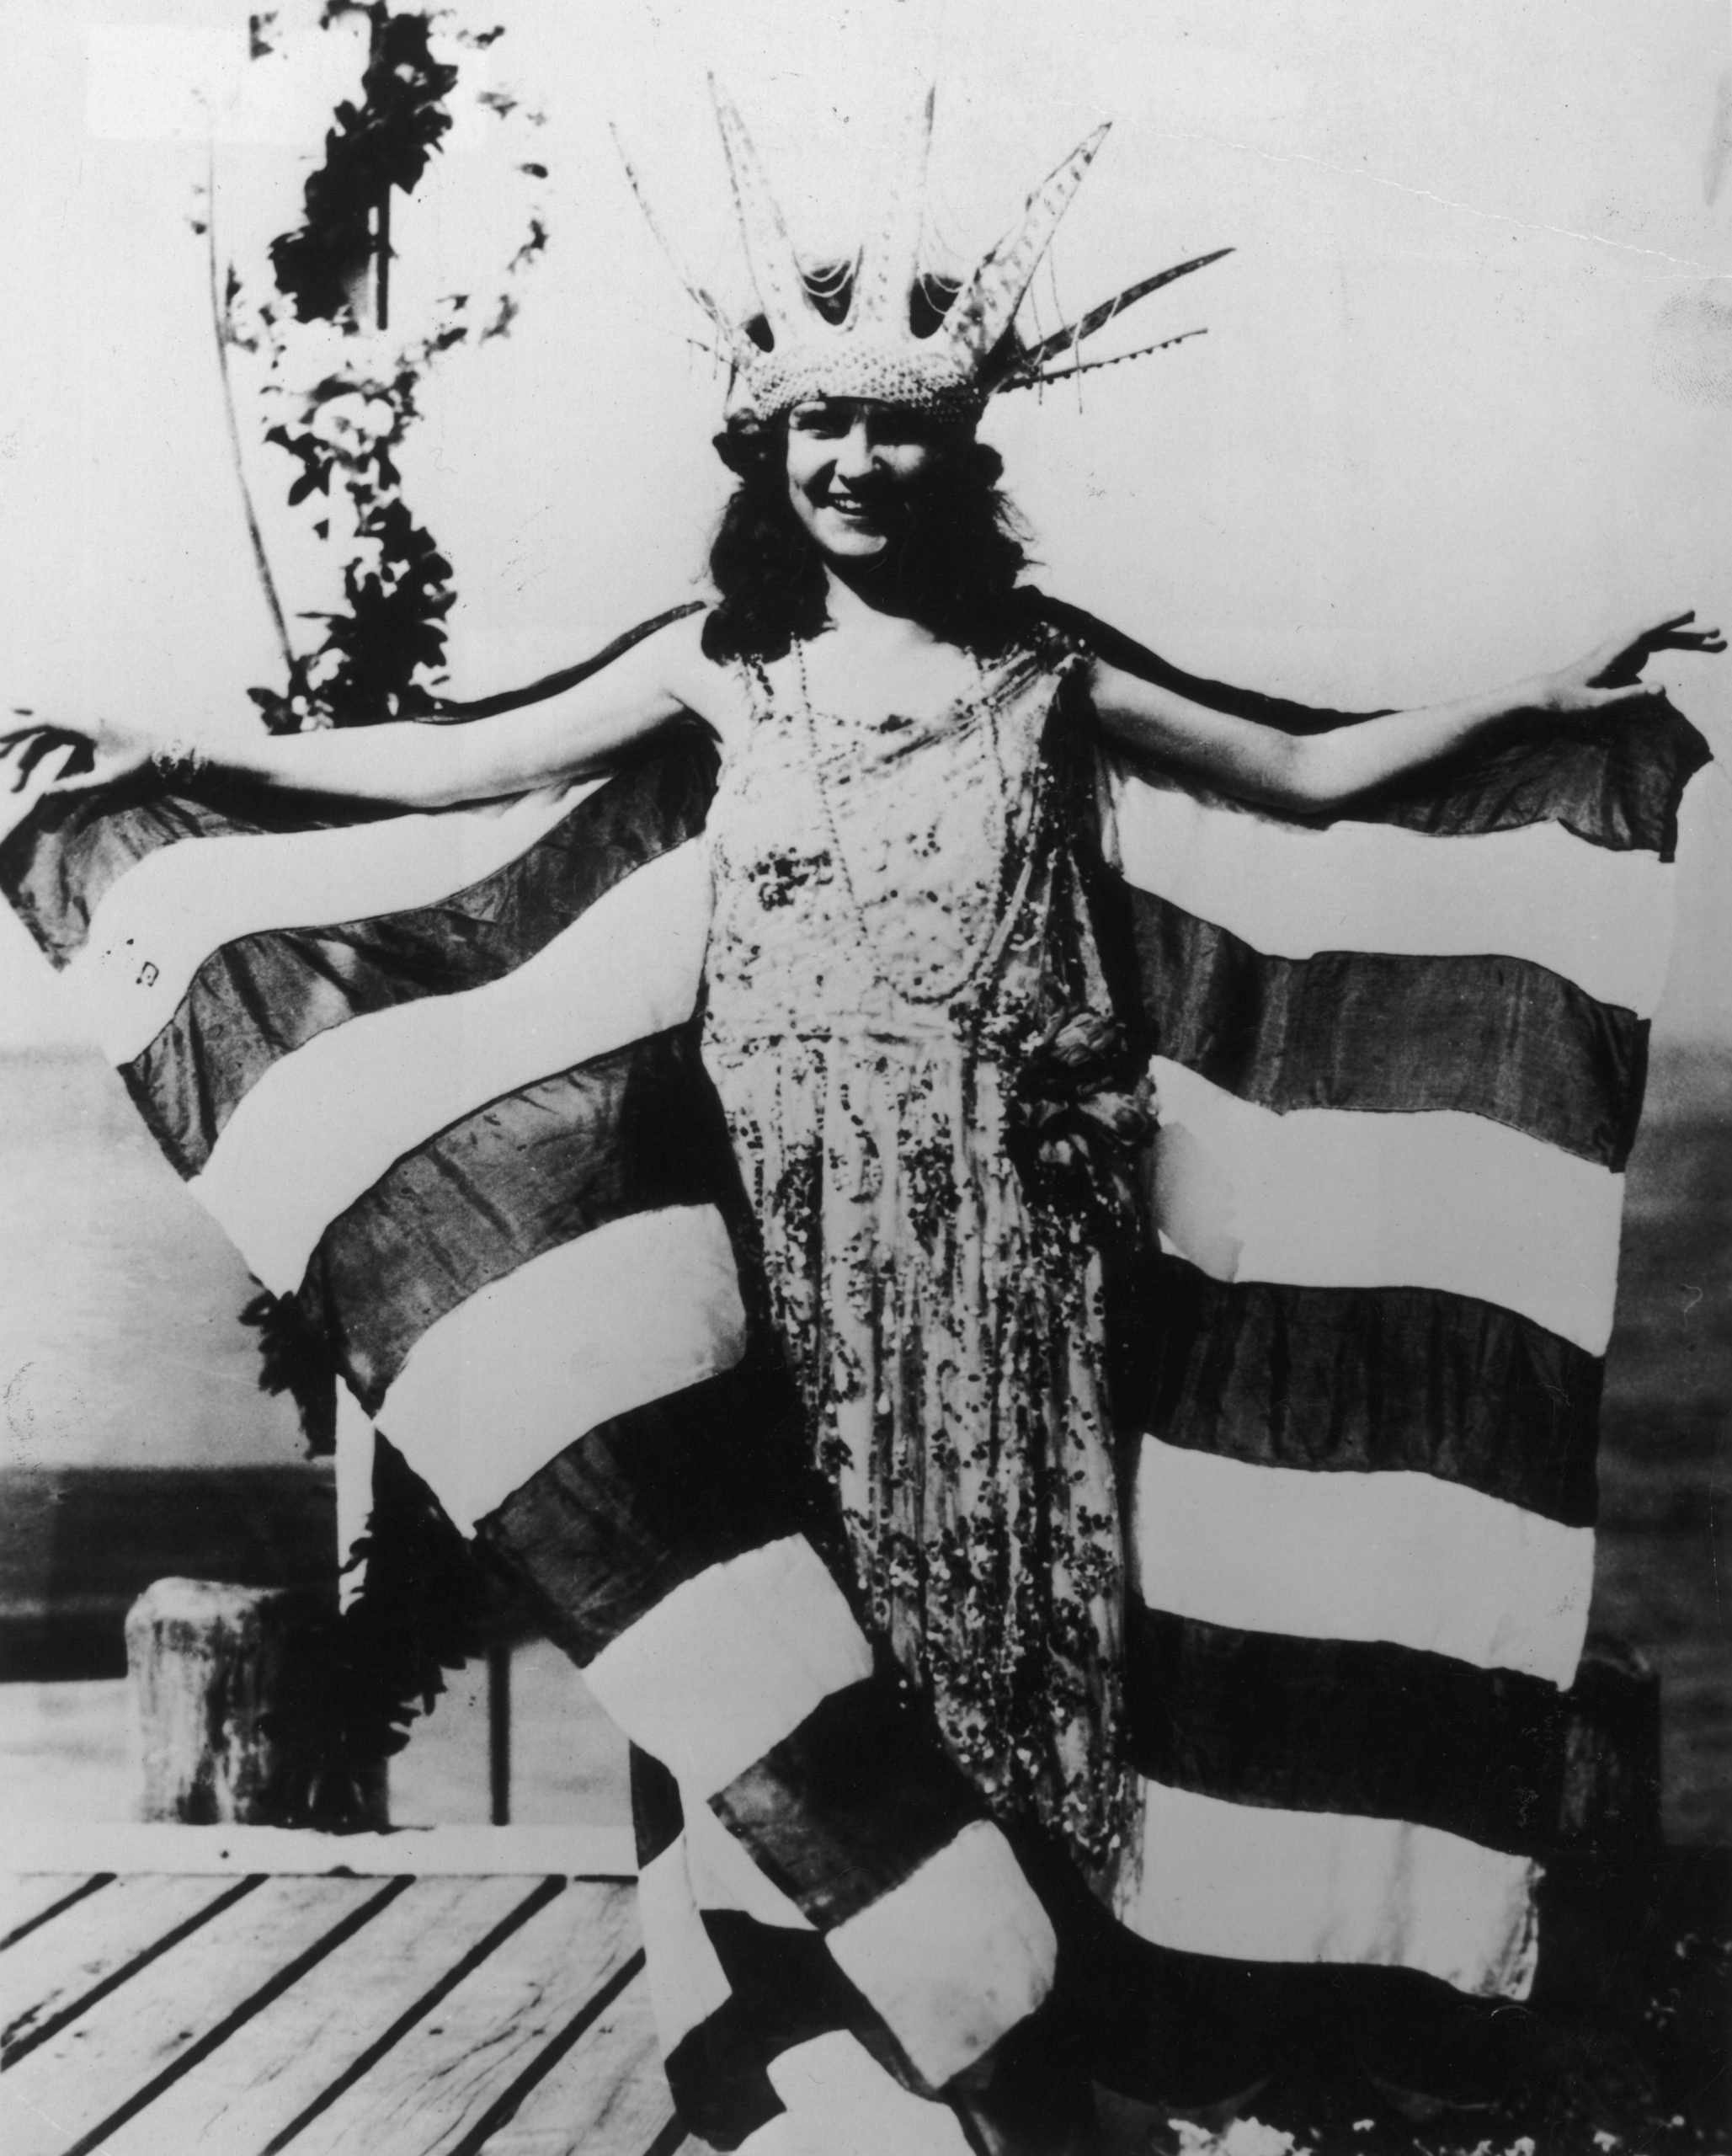 First Miss America standing in front of flag